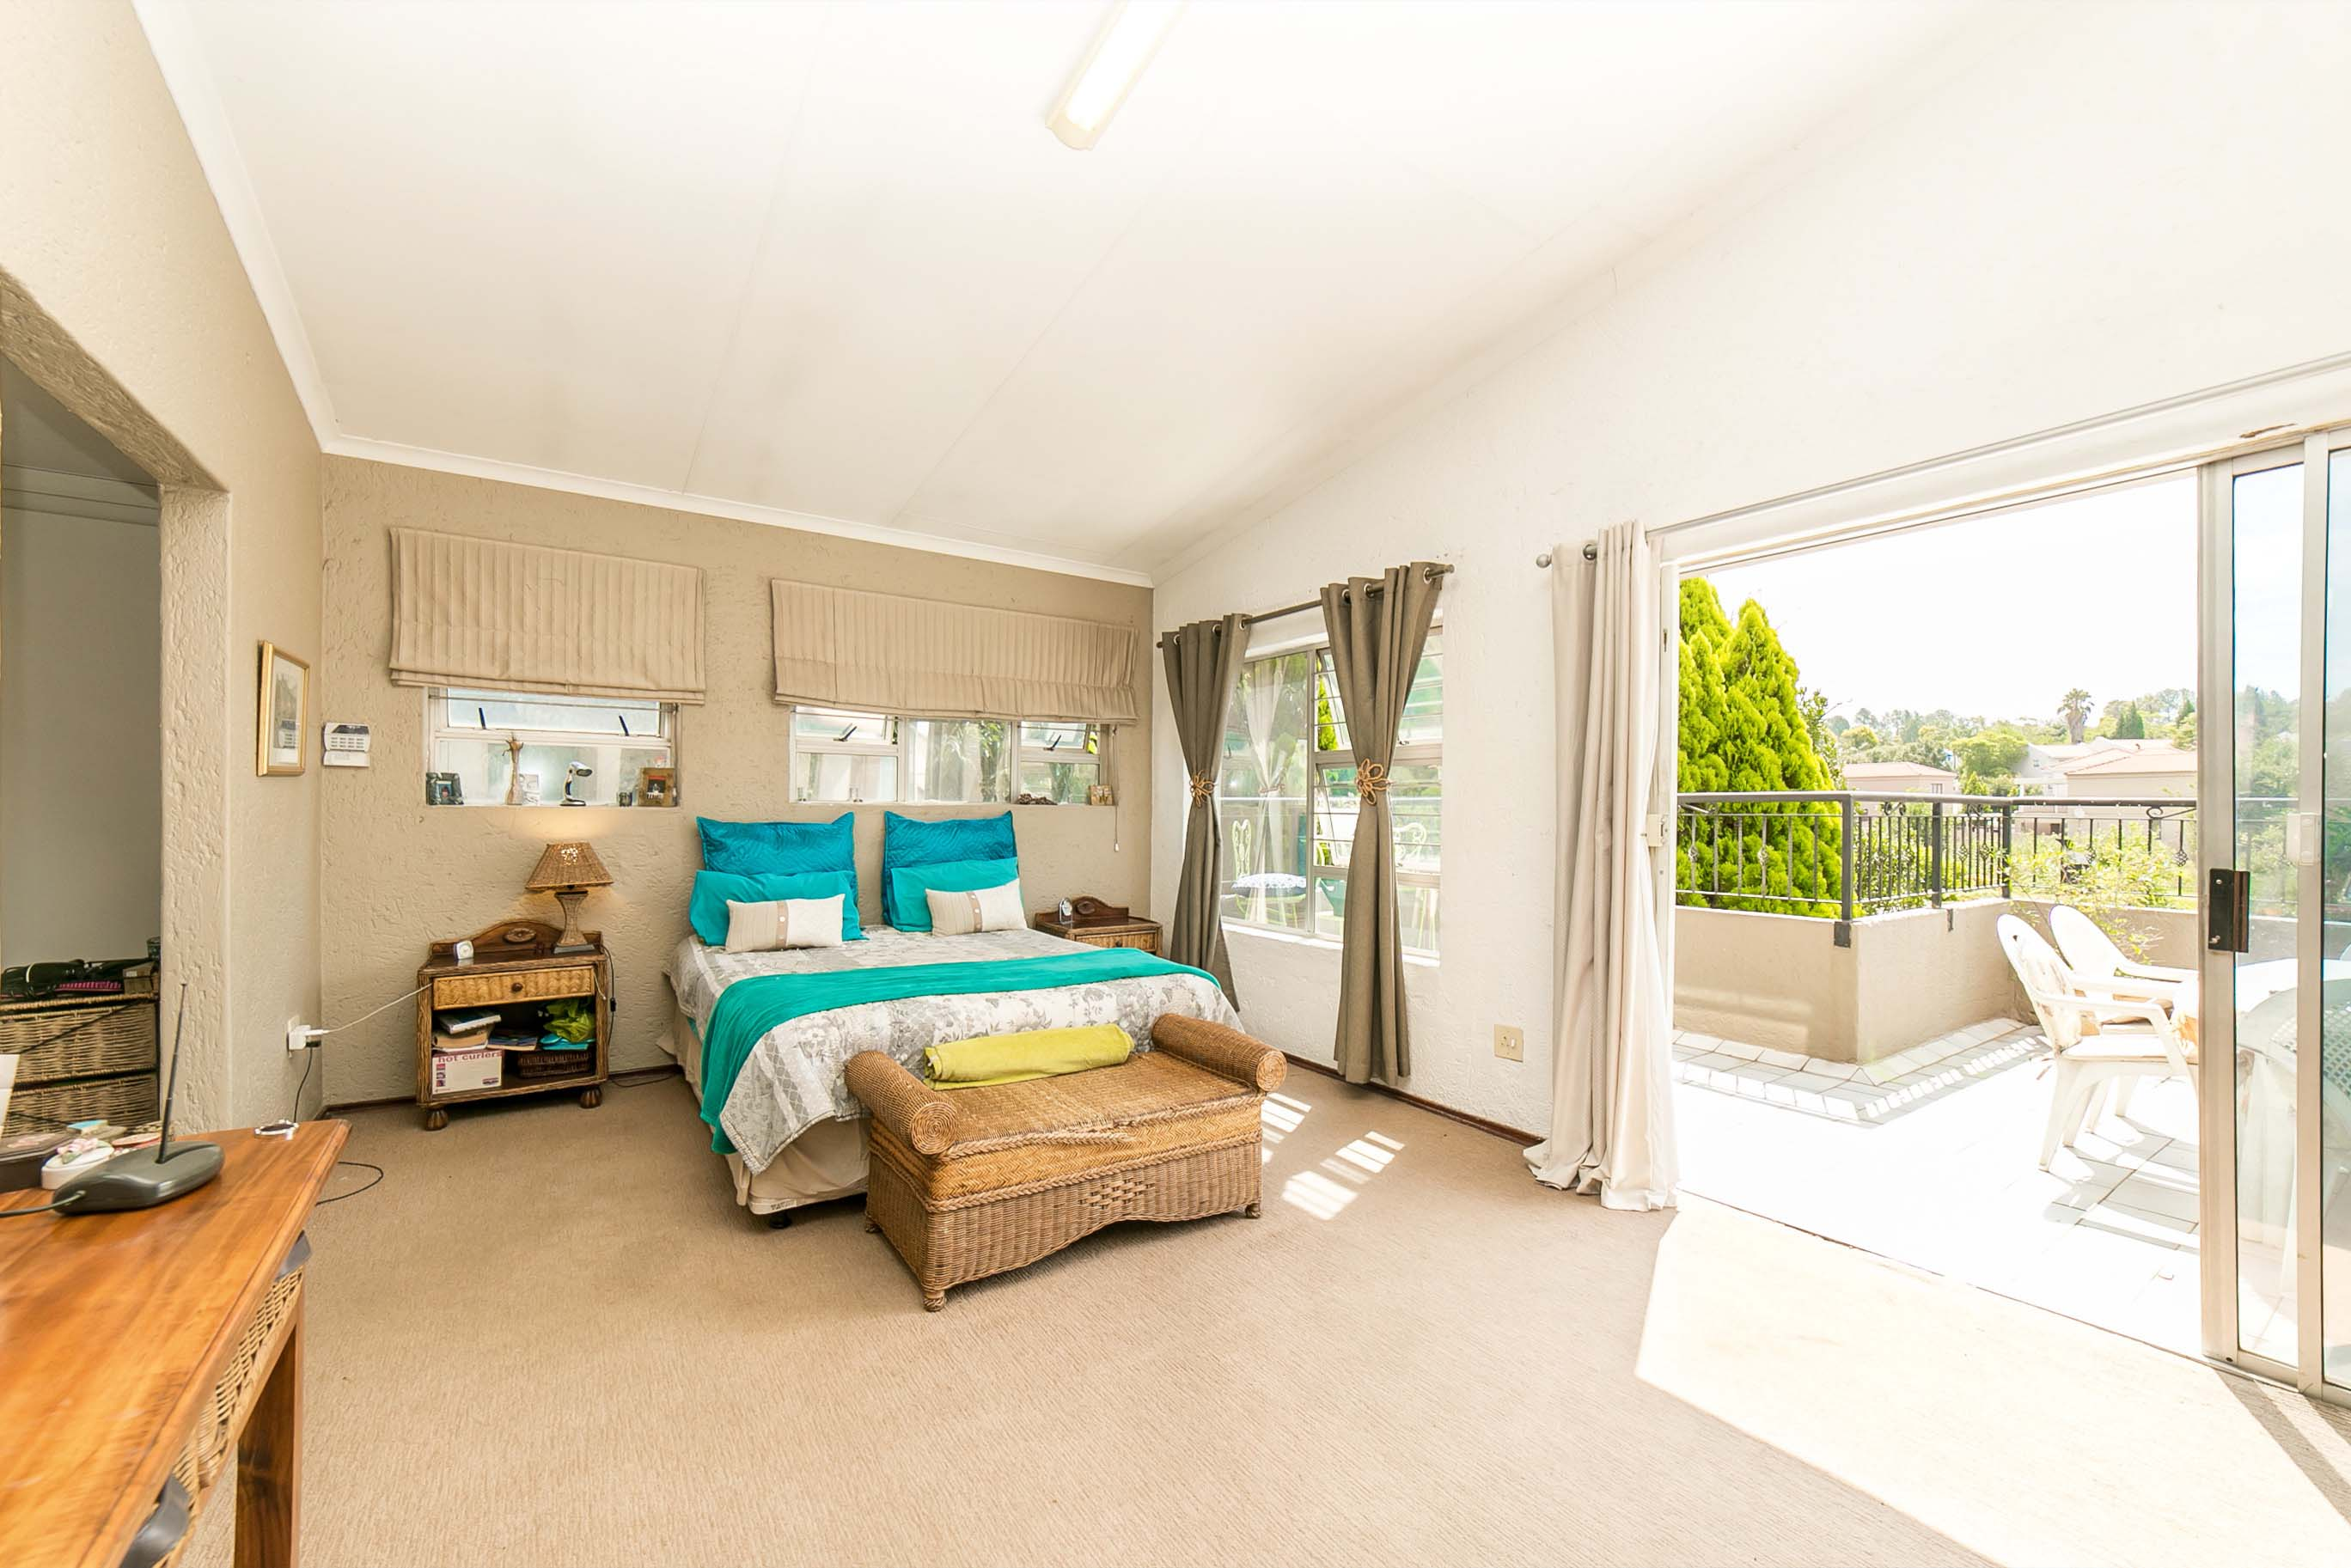 4 Bedroom House for sale in Lonehill ENT0082001 : photo#13